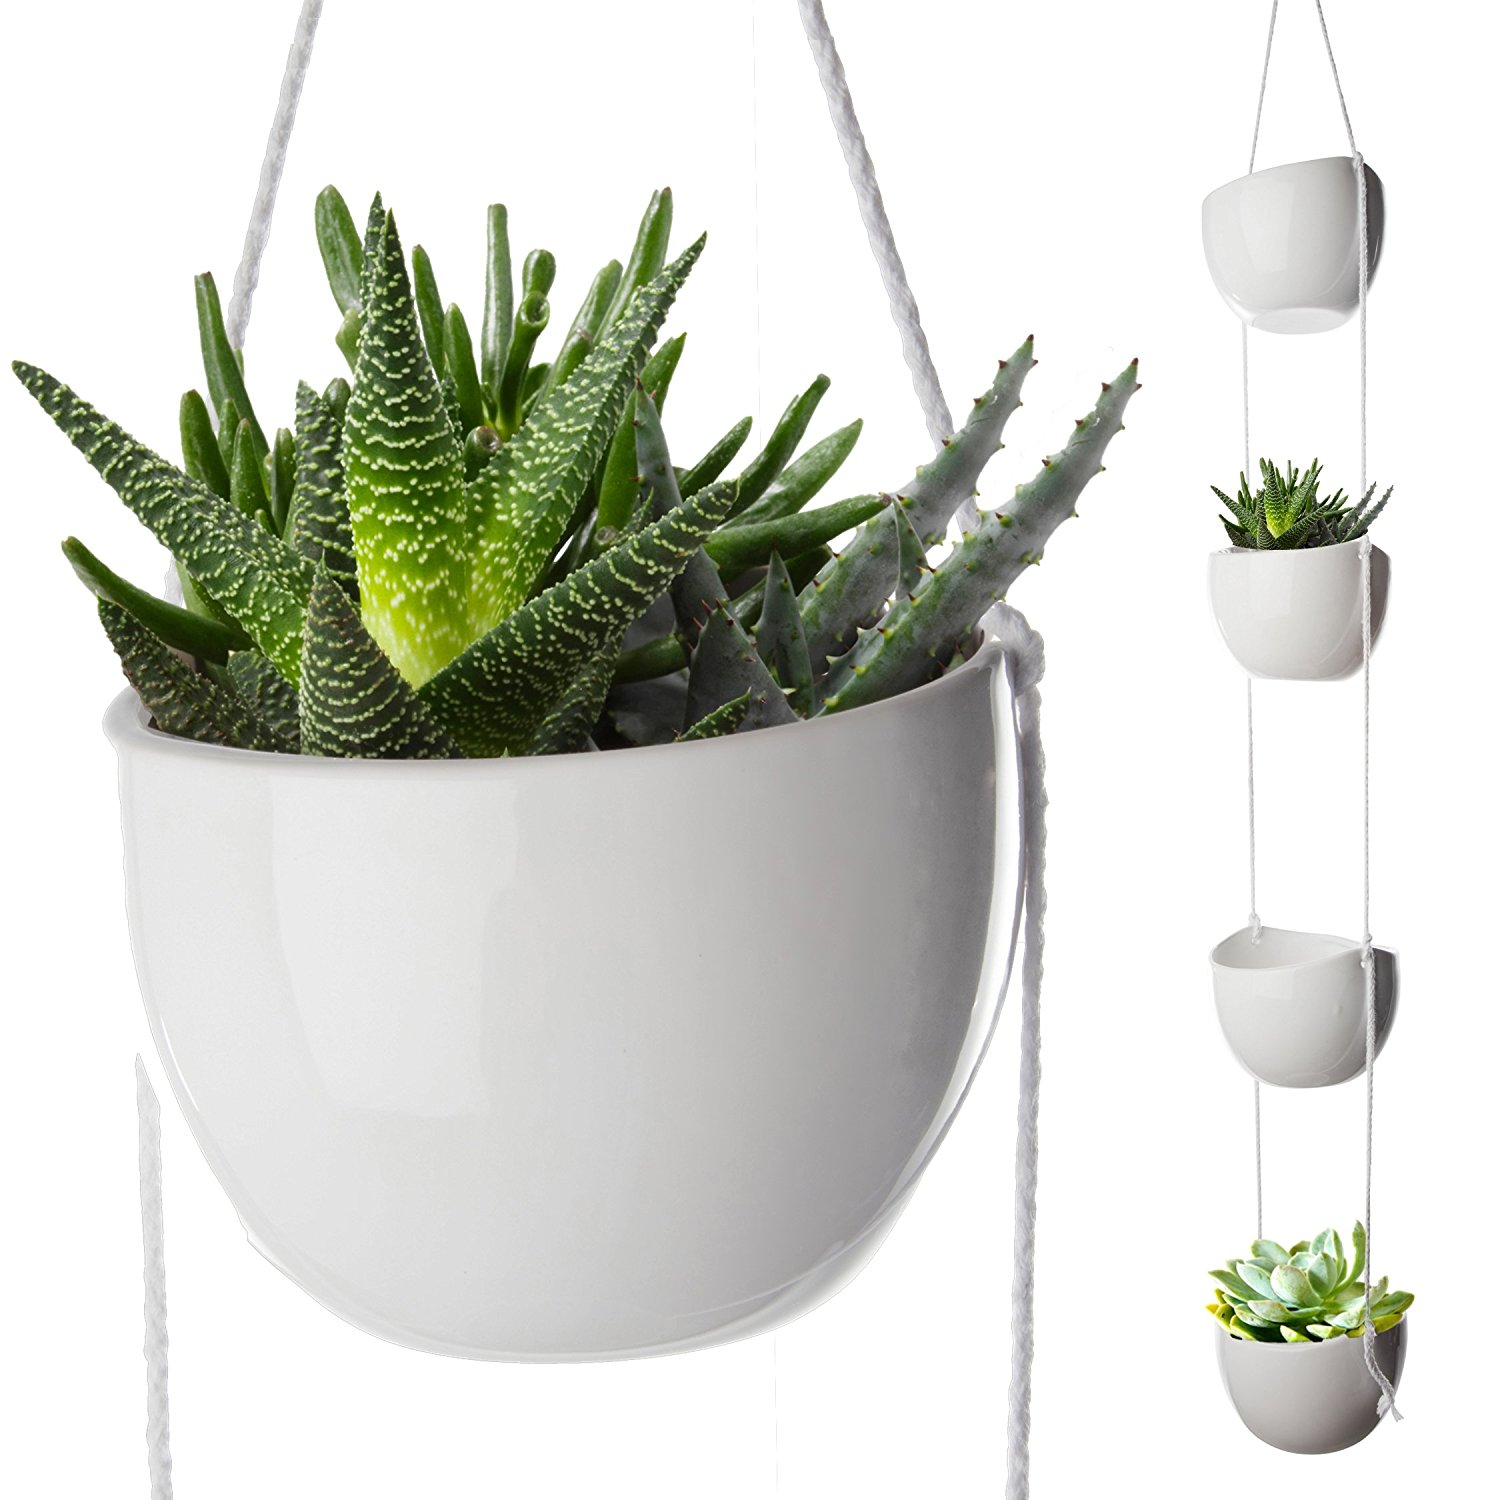 4 Piece Modern Ceramic Hanging Planter Set, Succulent Plants Pots, Decorative Display Bowls, Flowerpot Containers for... by California Home Goods